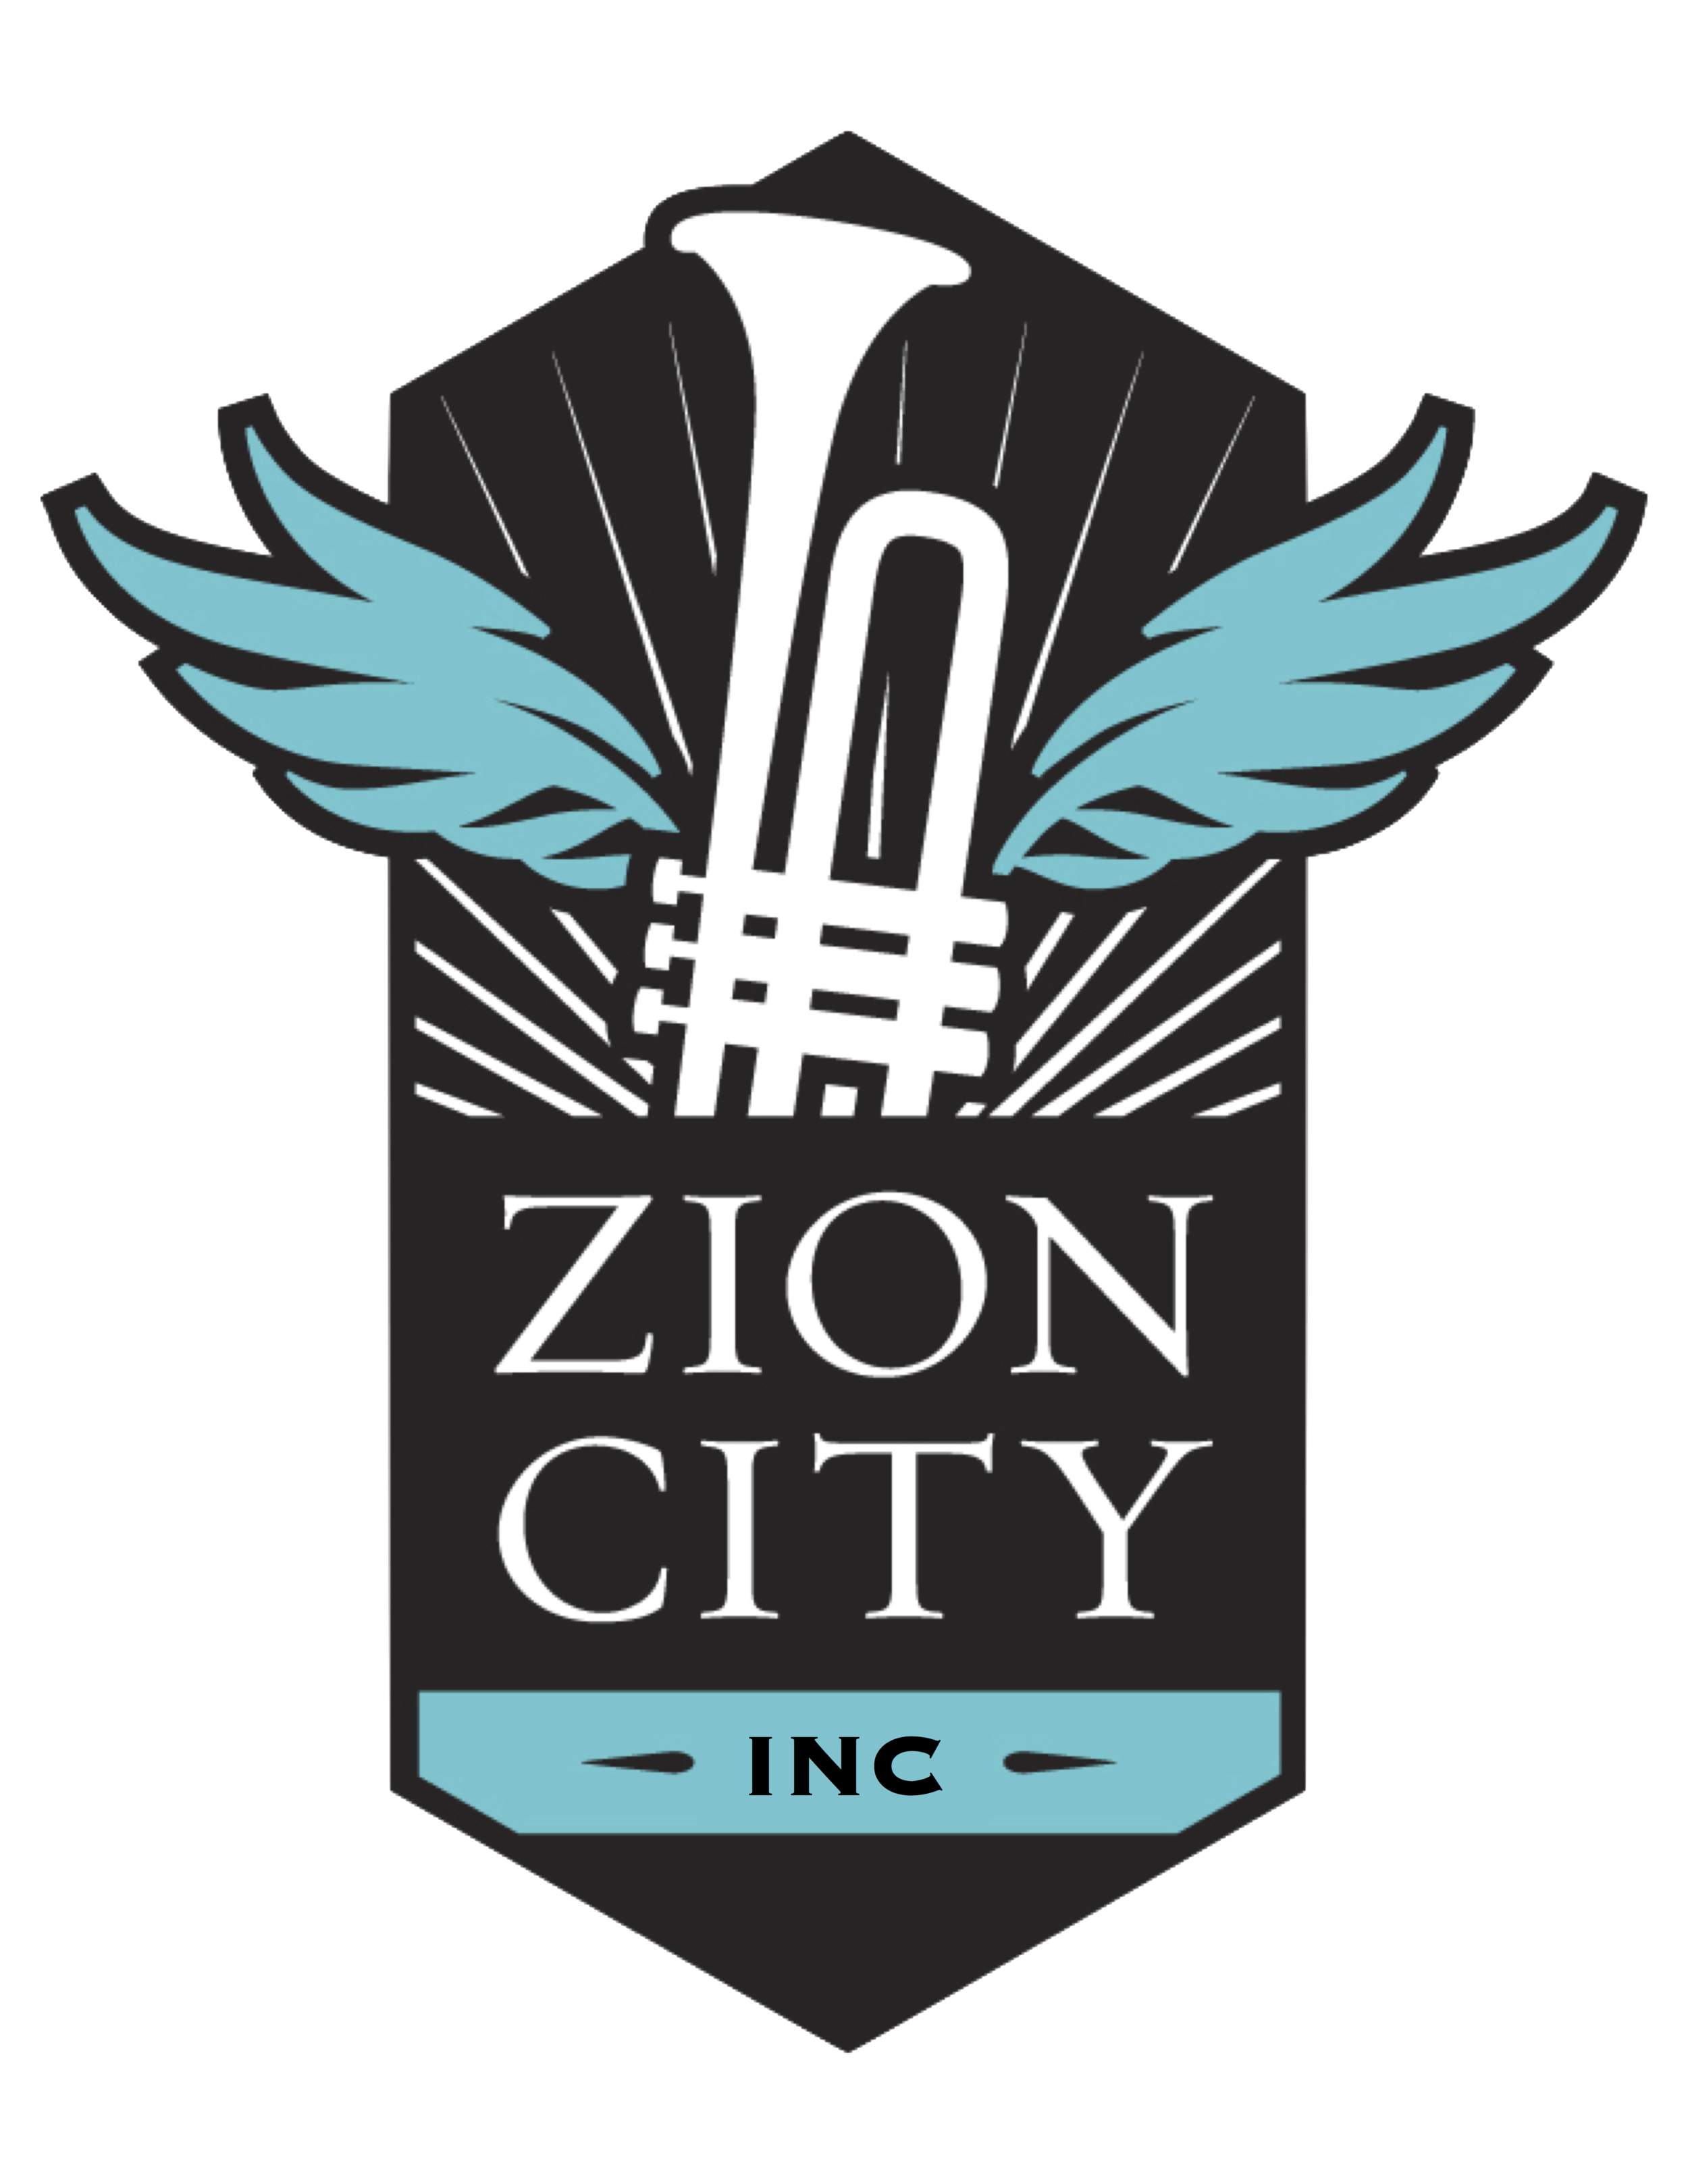 Zion City Inc JPG.png